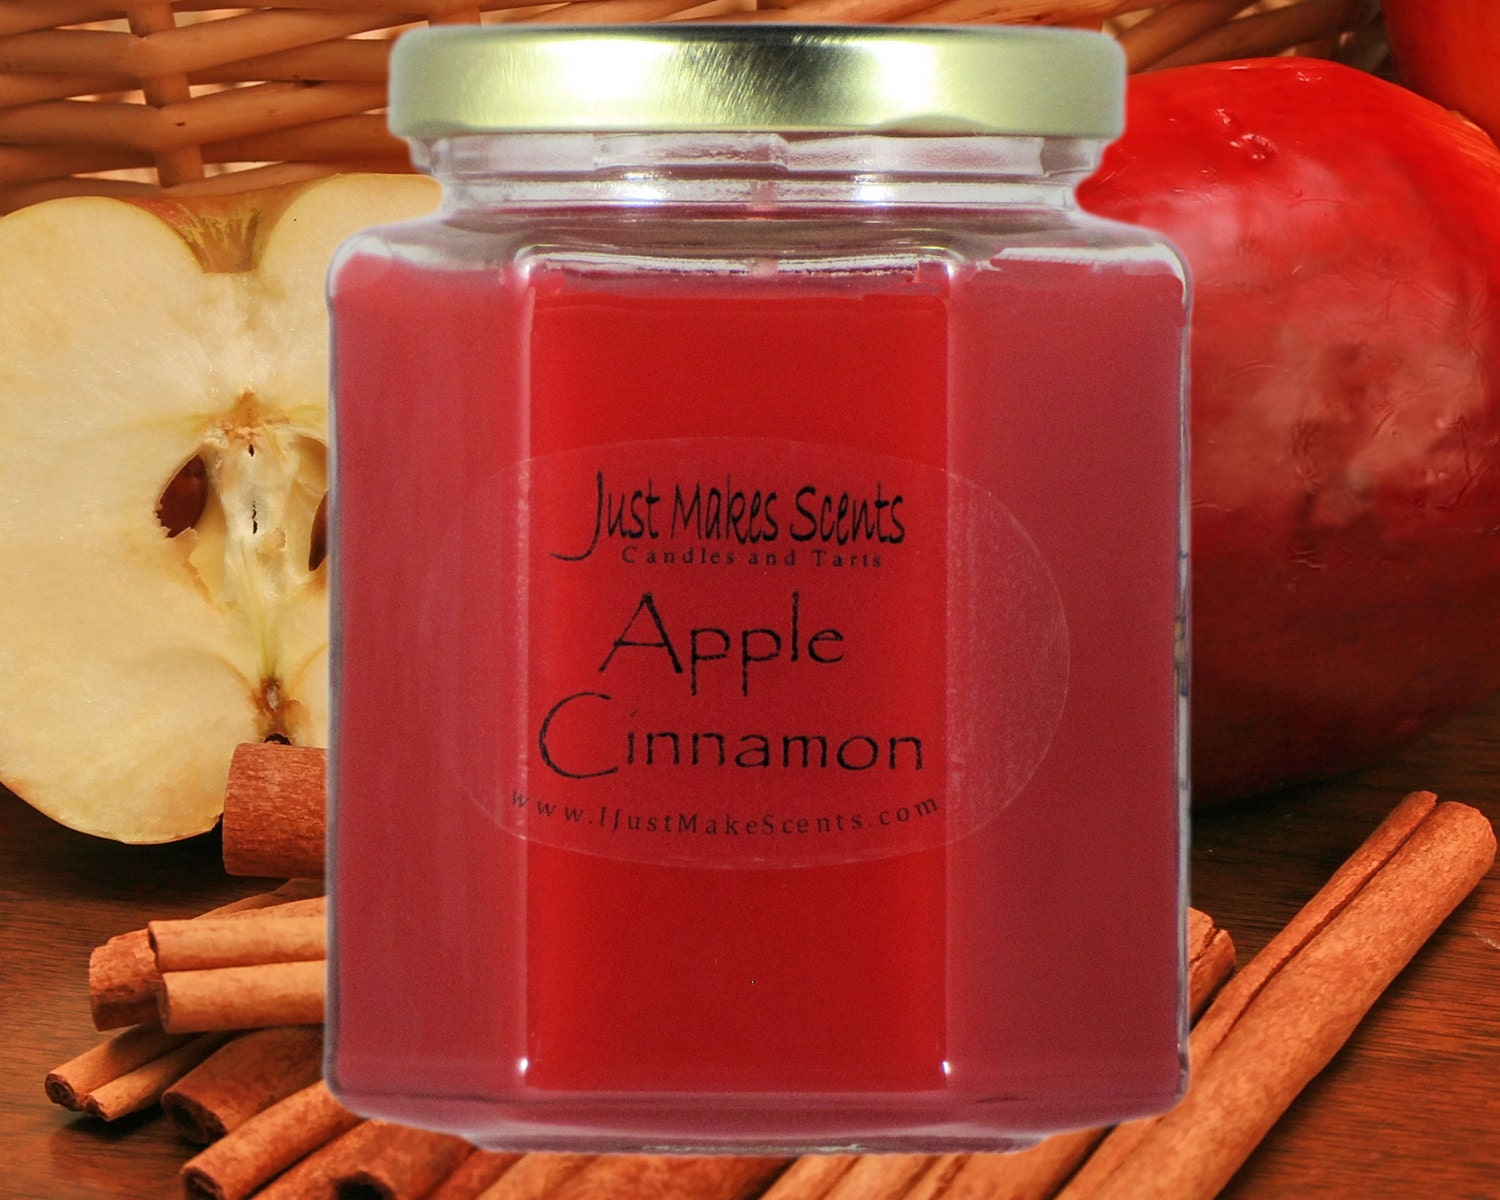 Apple Cinnamon Scented Candle Free Shipping Offer On Orders